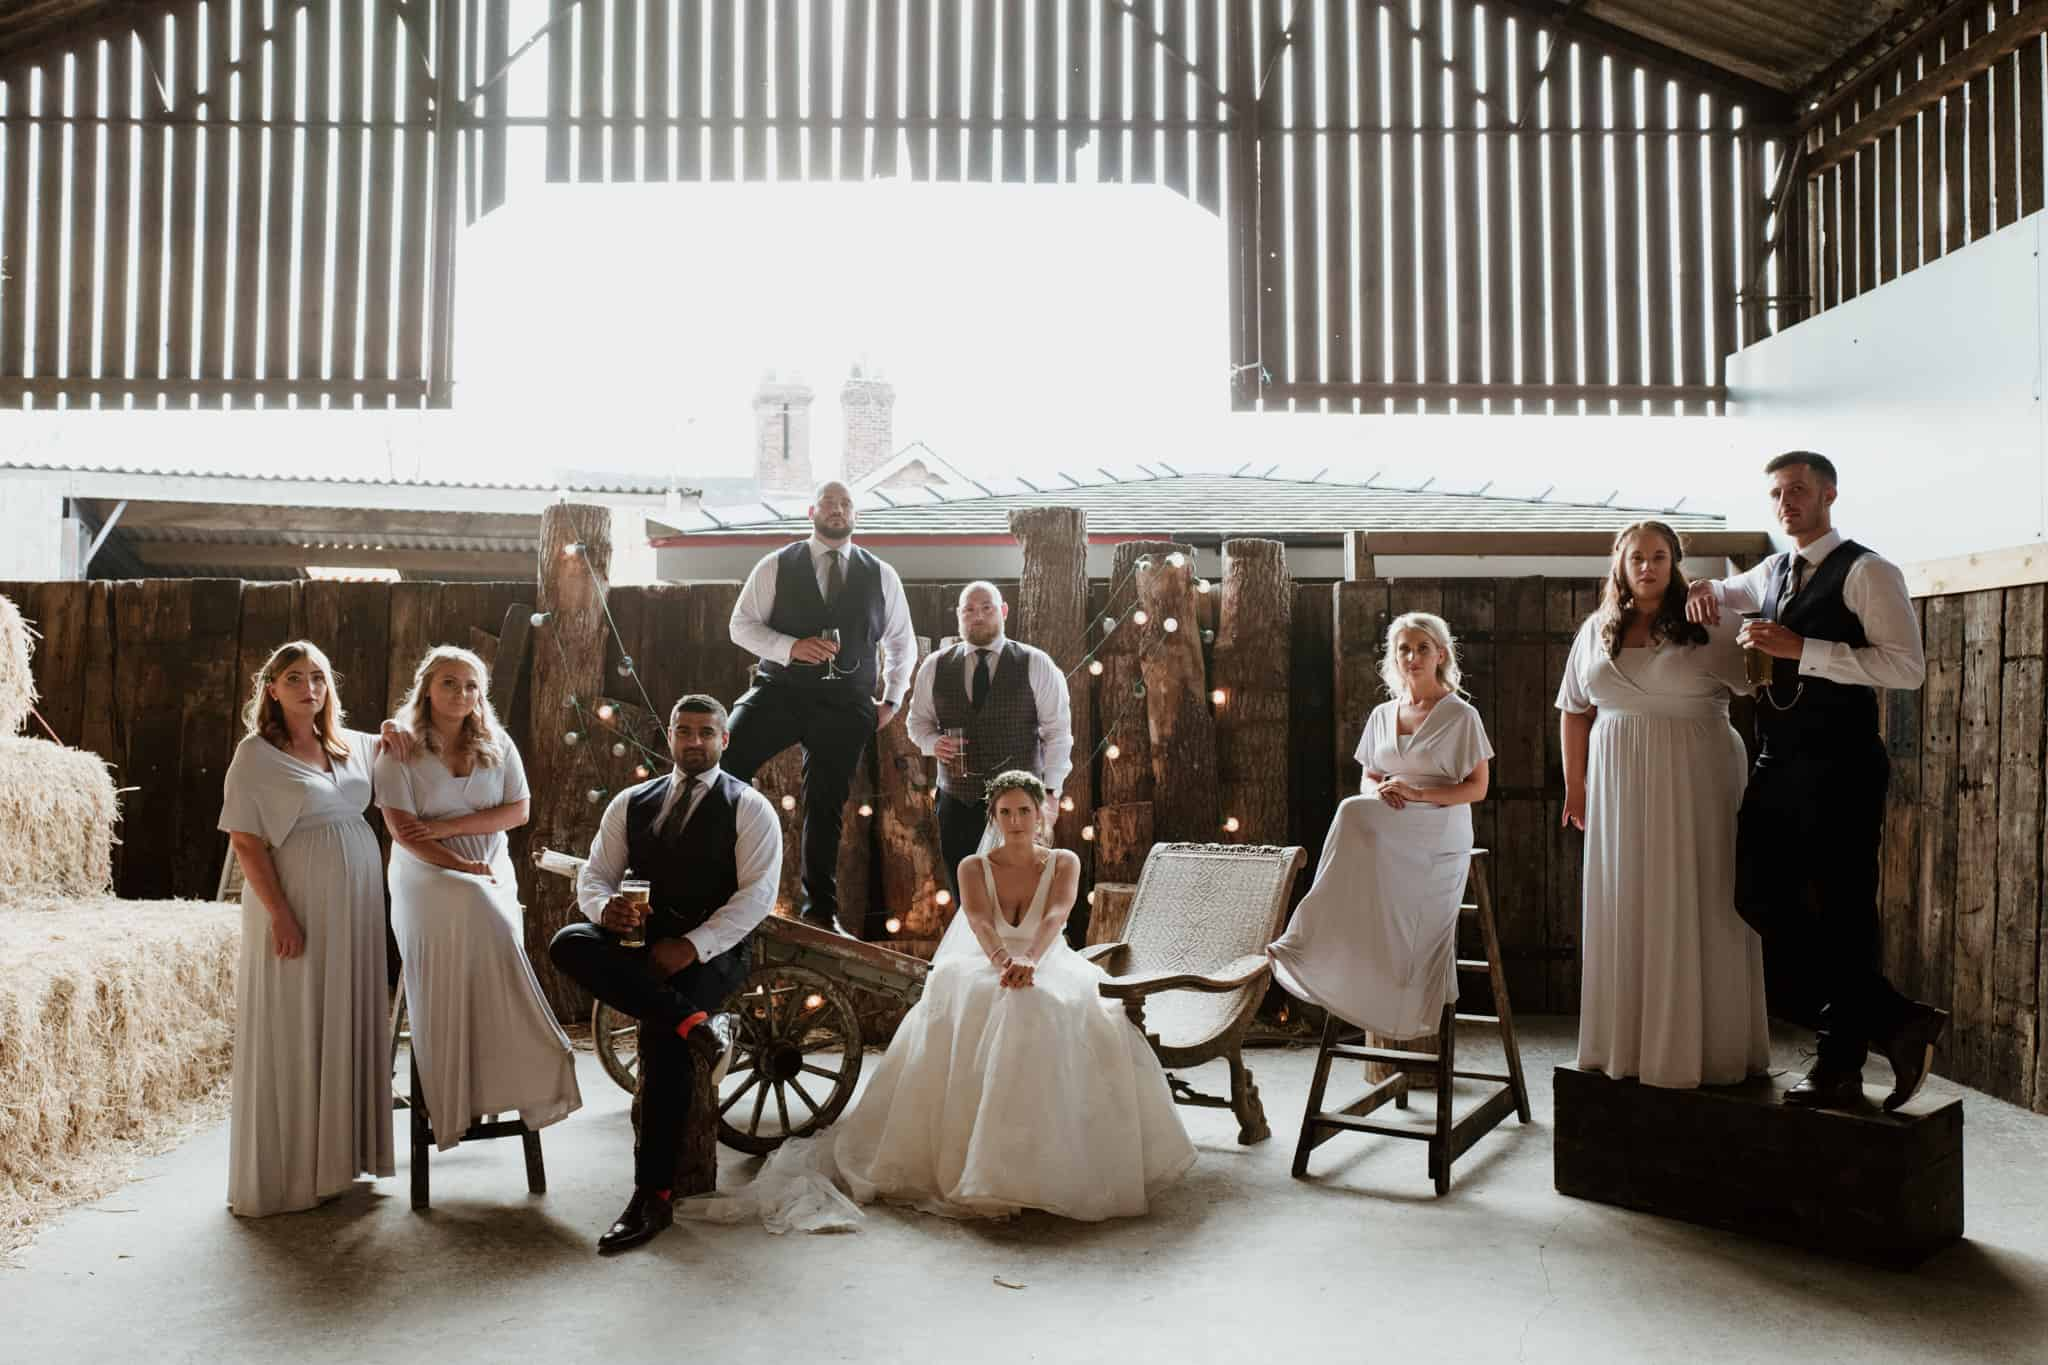 Bridal Party shot at a Cheshire wedding barn